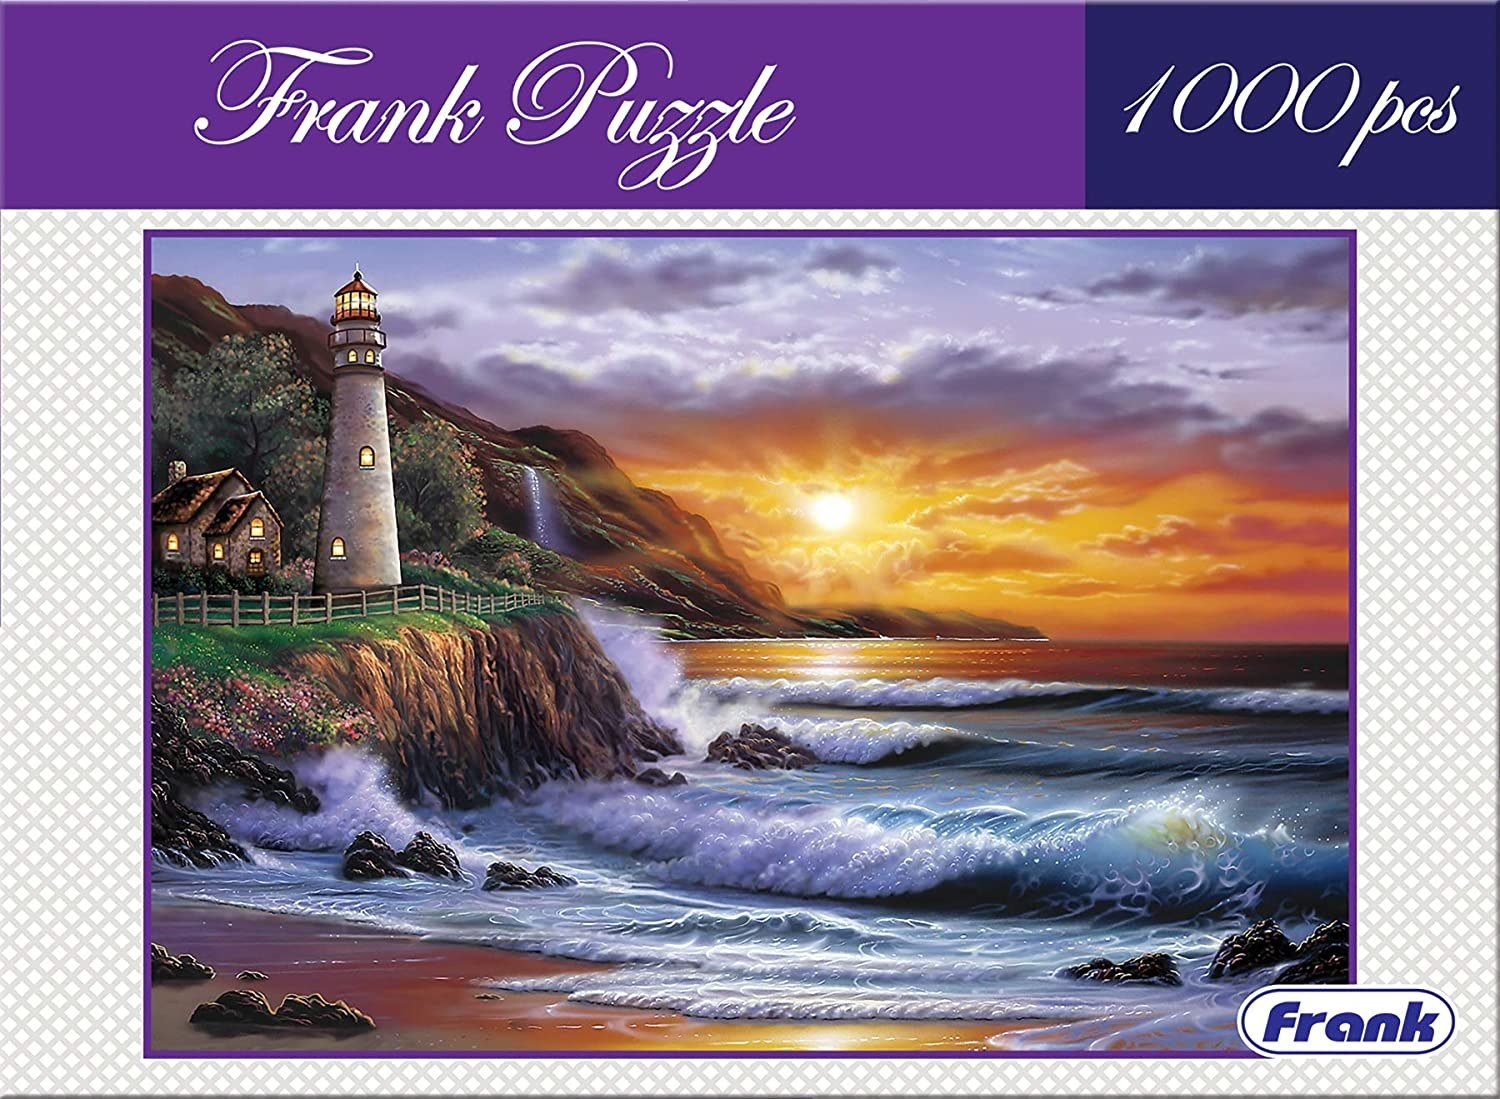 A puzzle with a lighthouse